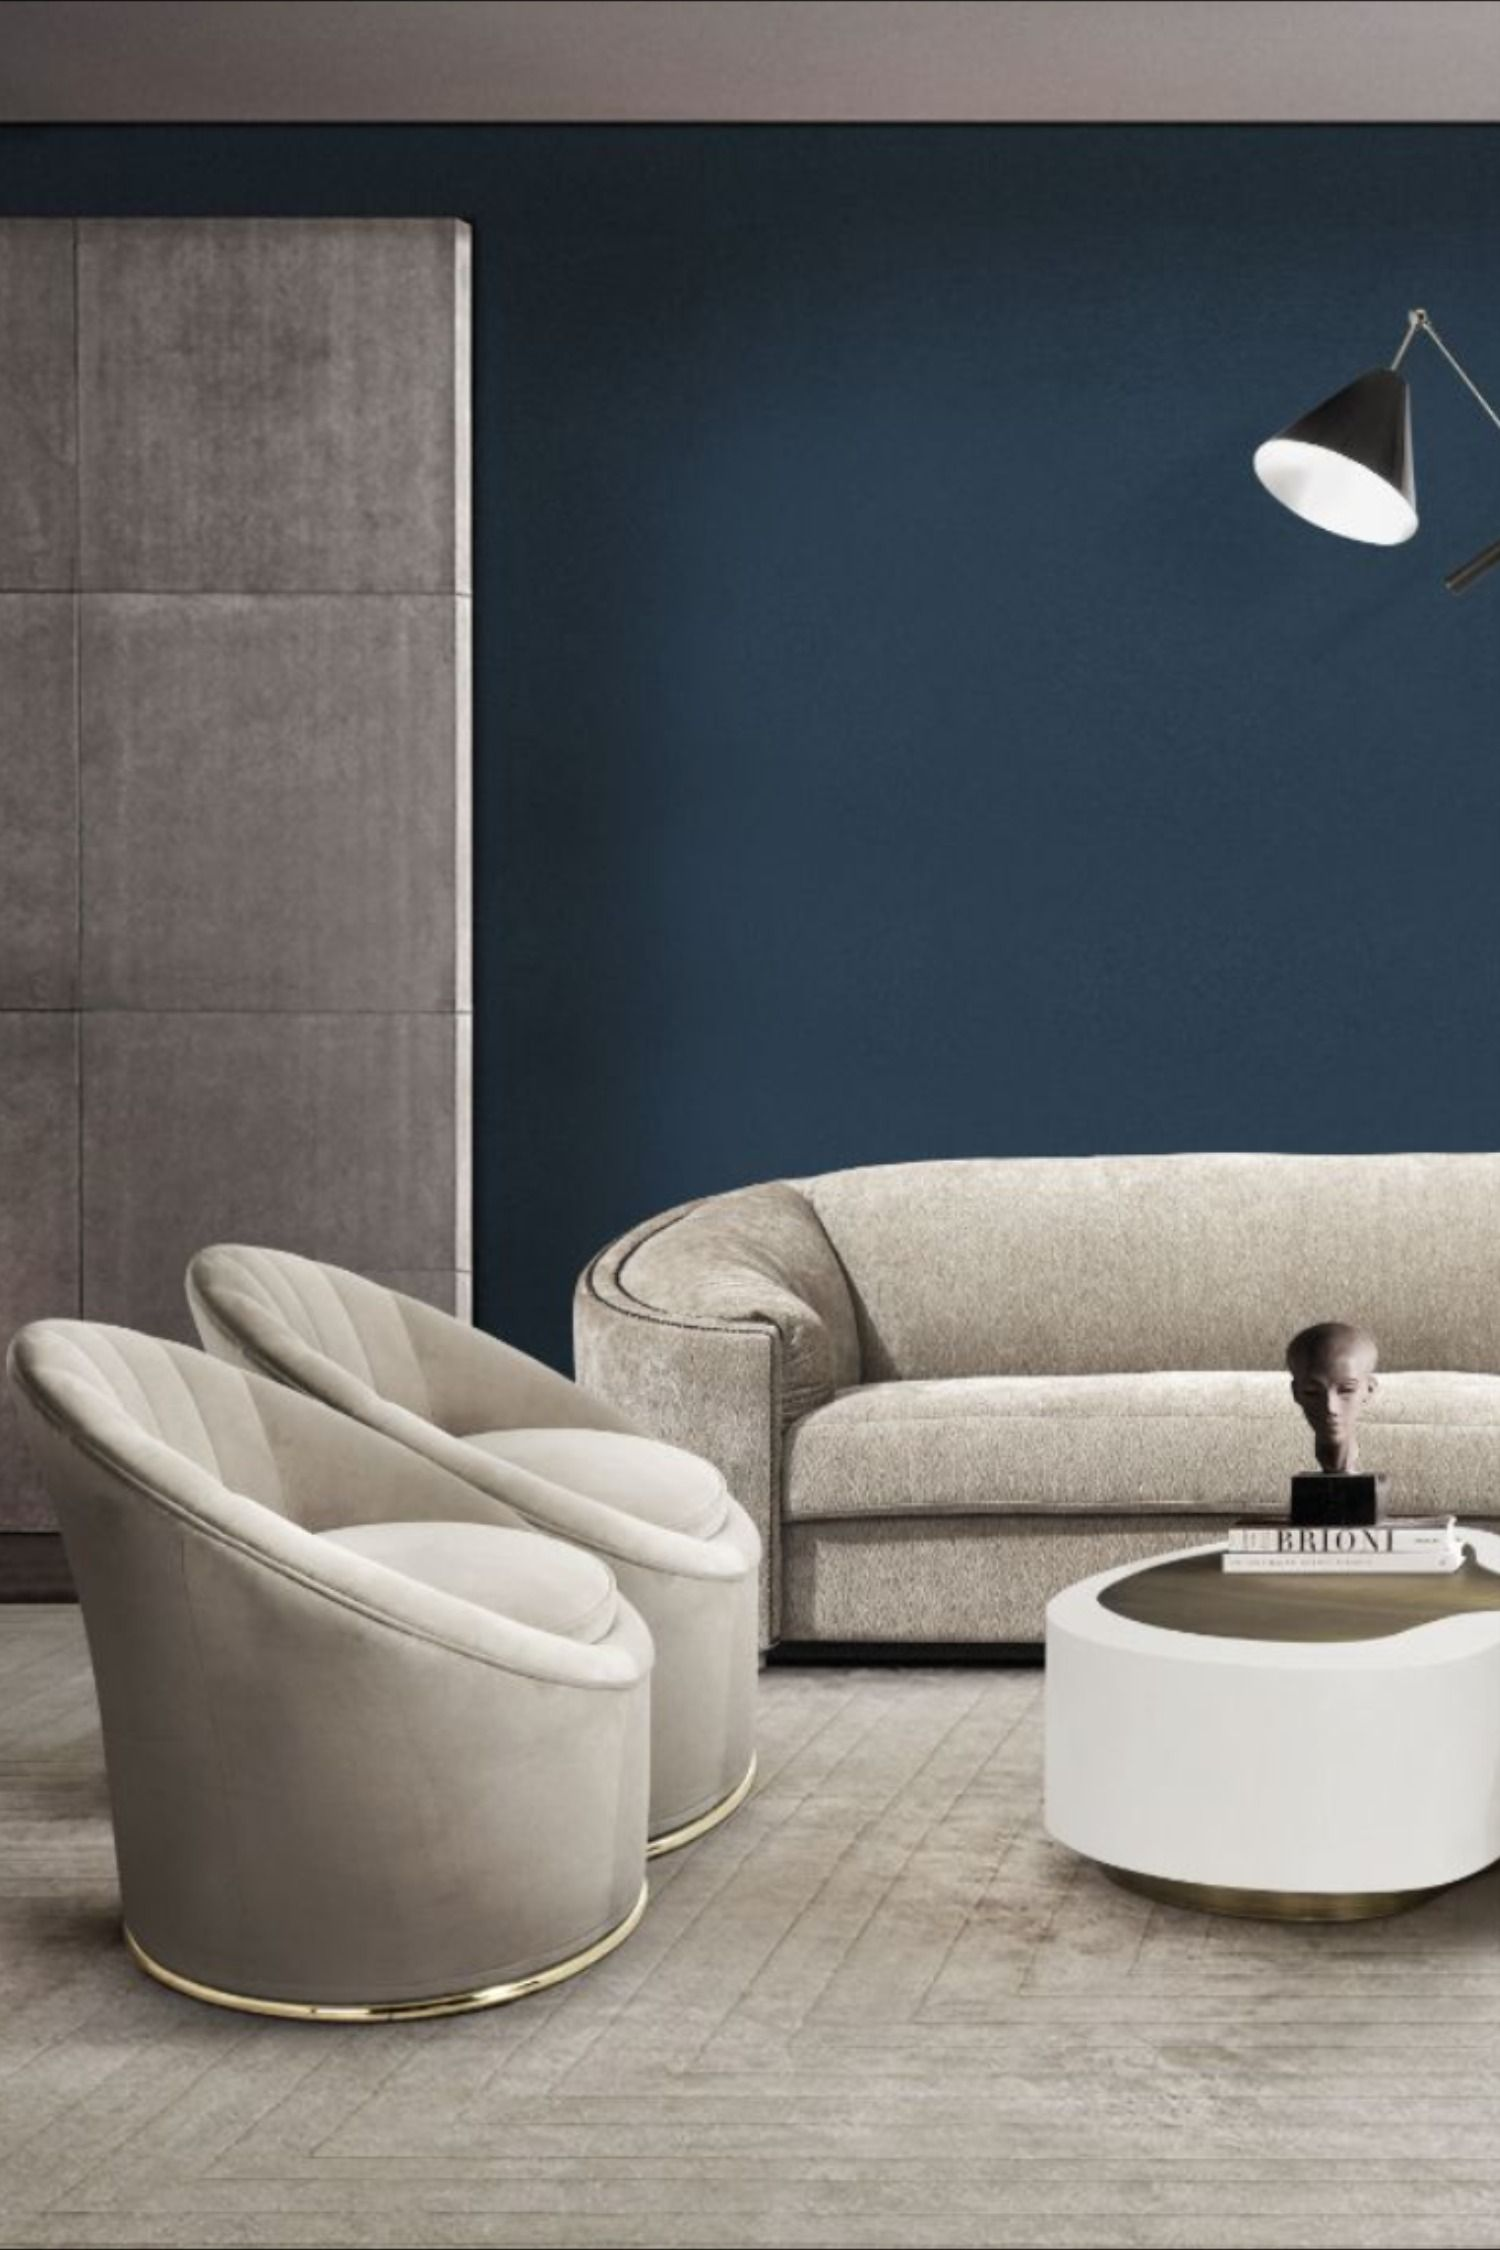 Colour Combination Ideas For Your Living Room Design Living Room Designs Room Design Interior Design Living Room